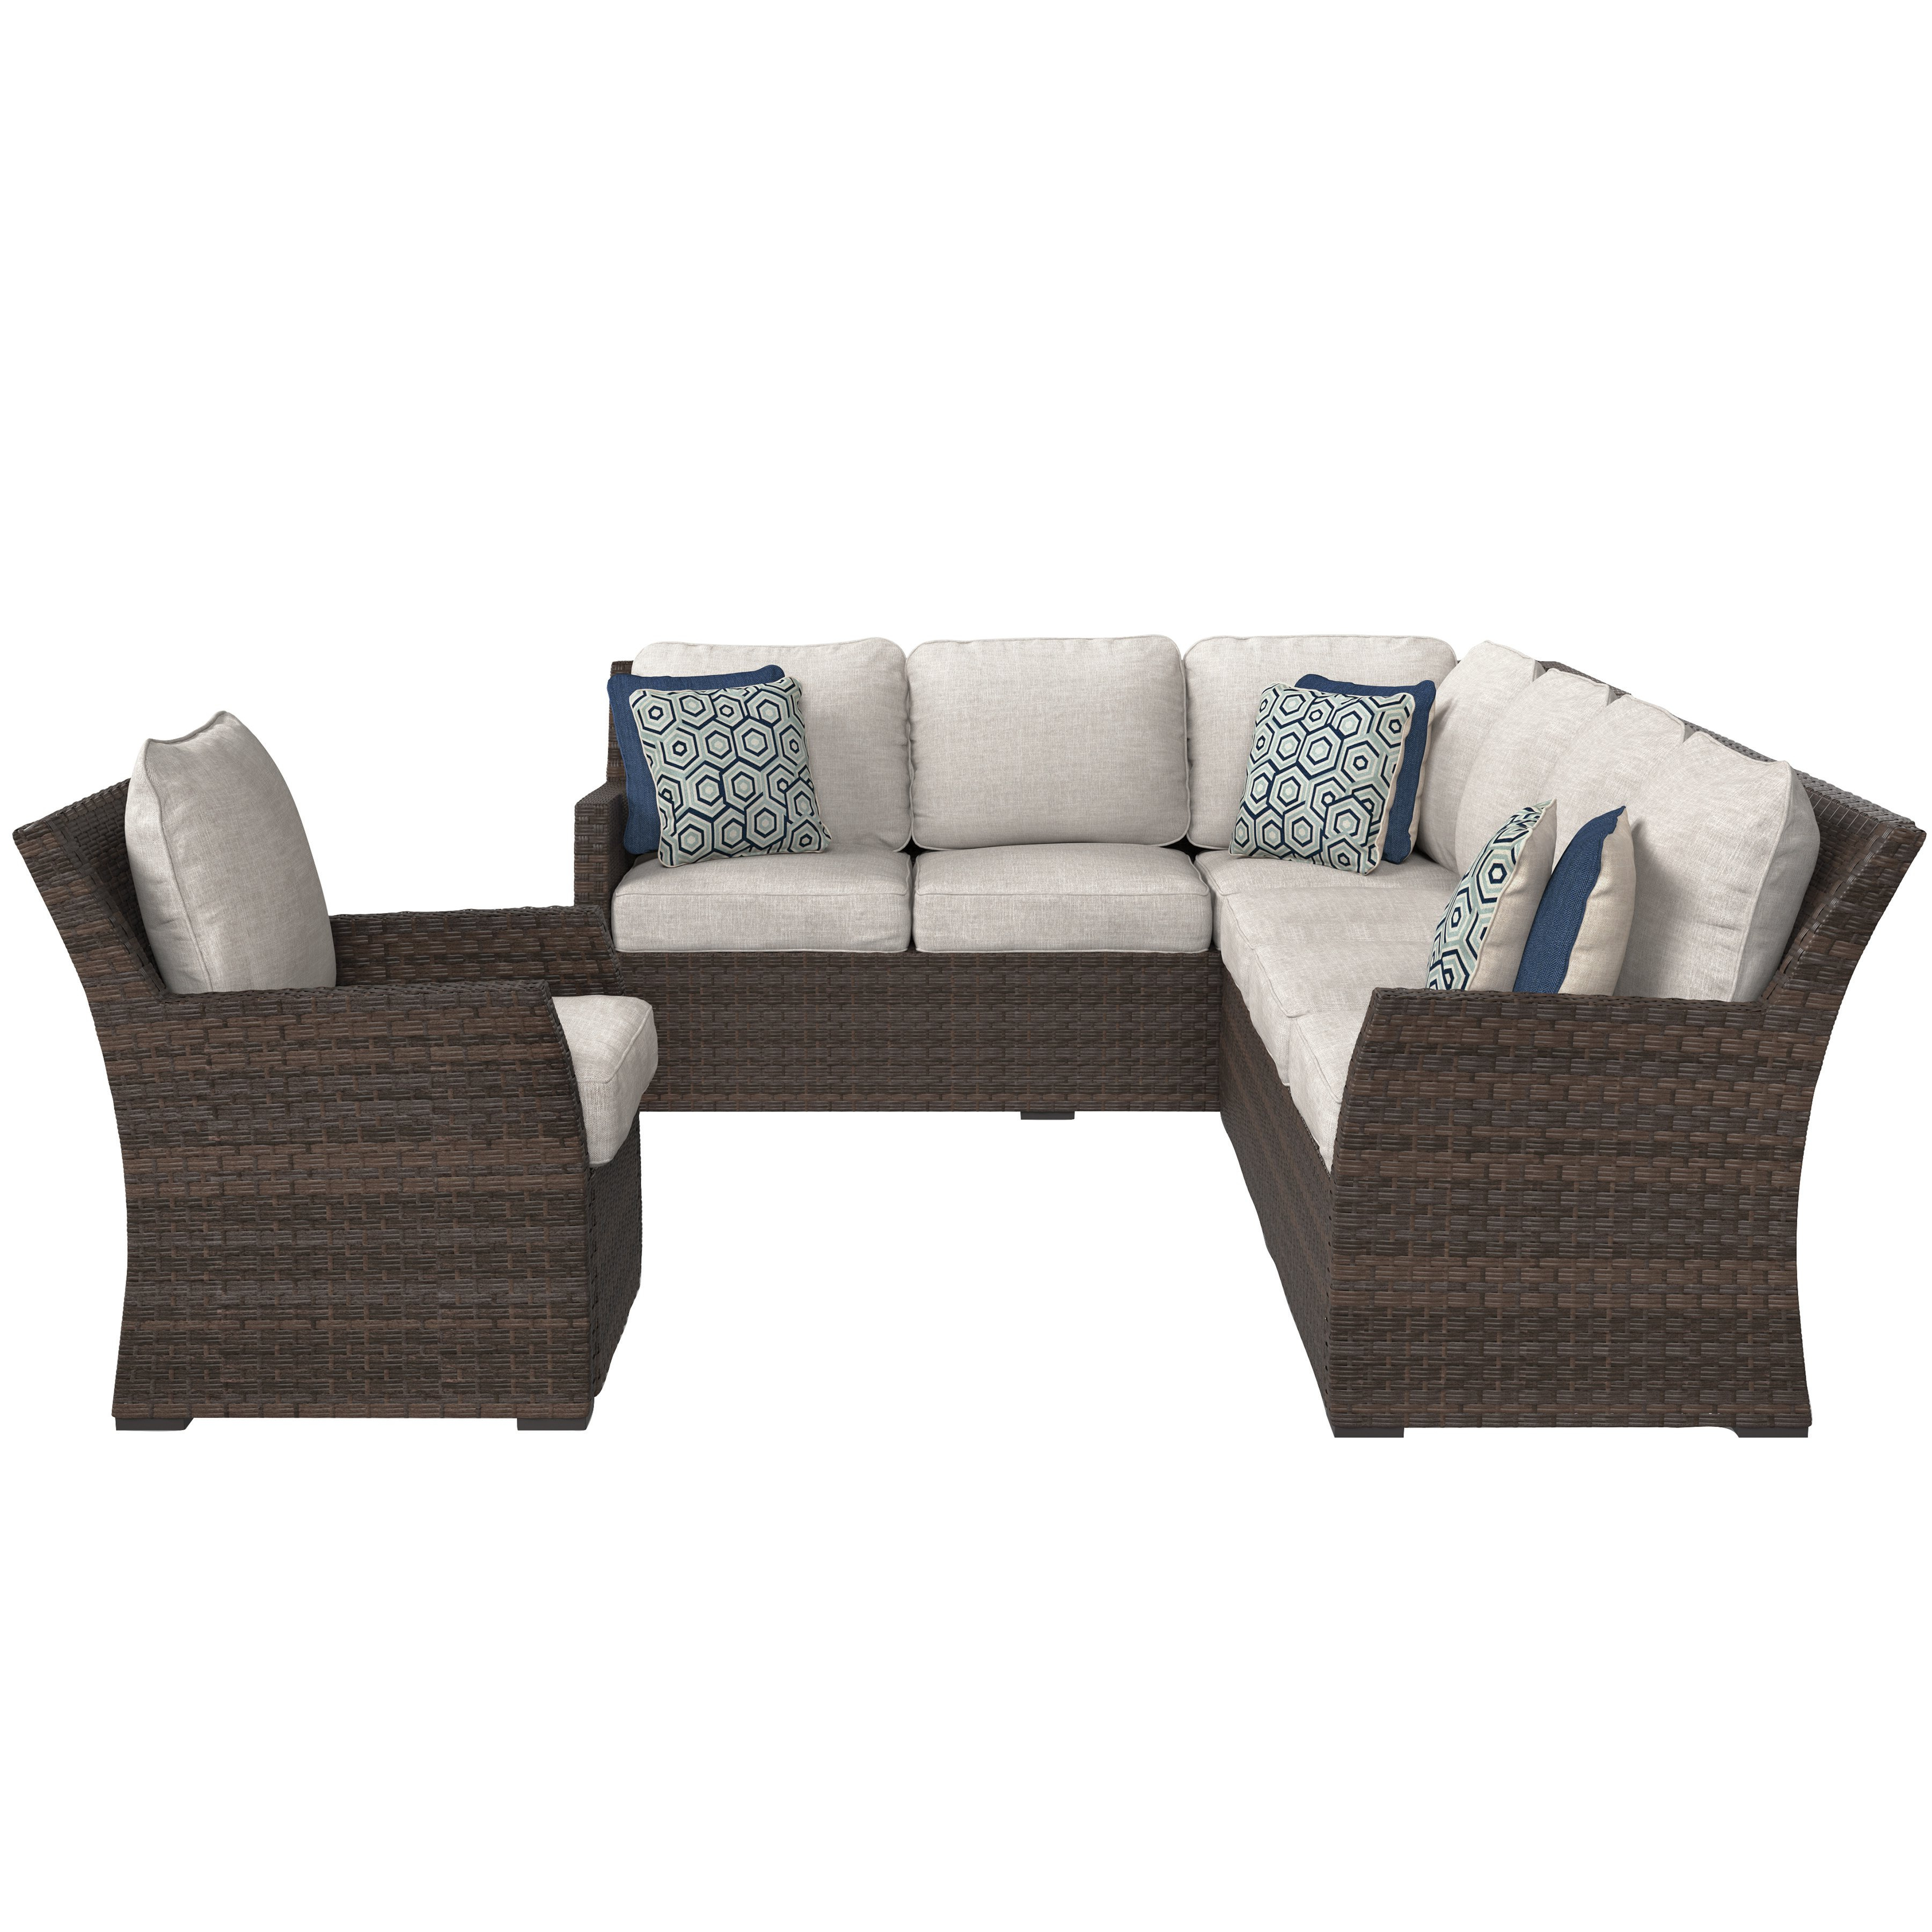 Adele Patio Sectional With Cushions Regarding Well Liked Northridge Patio Sofas With Sunbrella Cushions (Gallery 14 of 20)